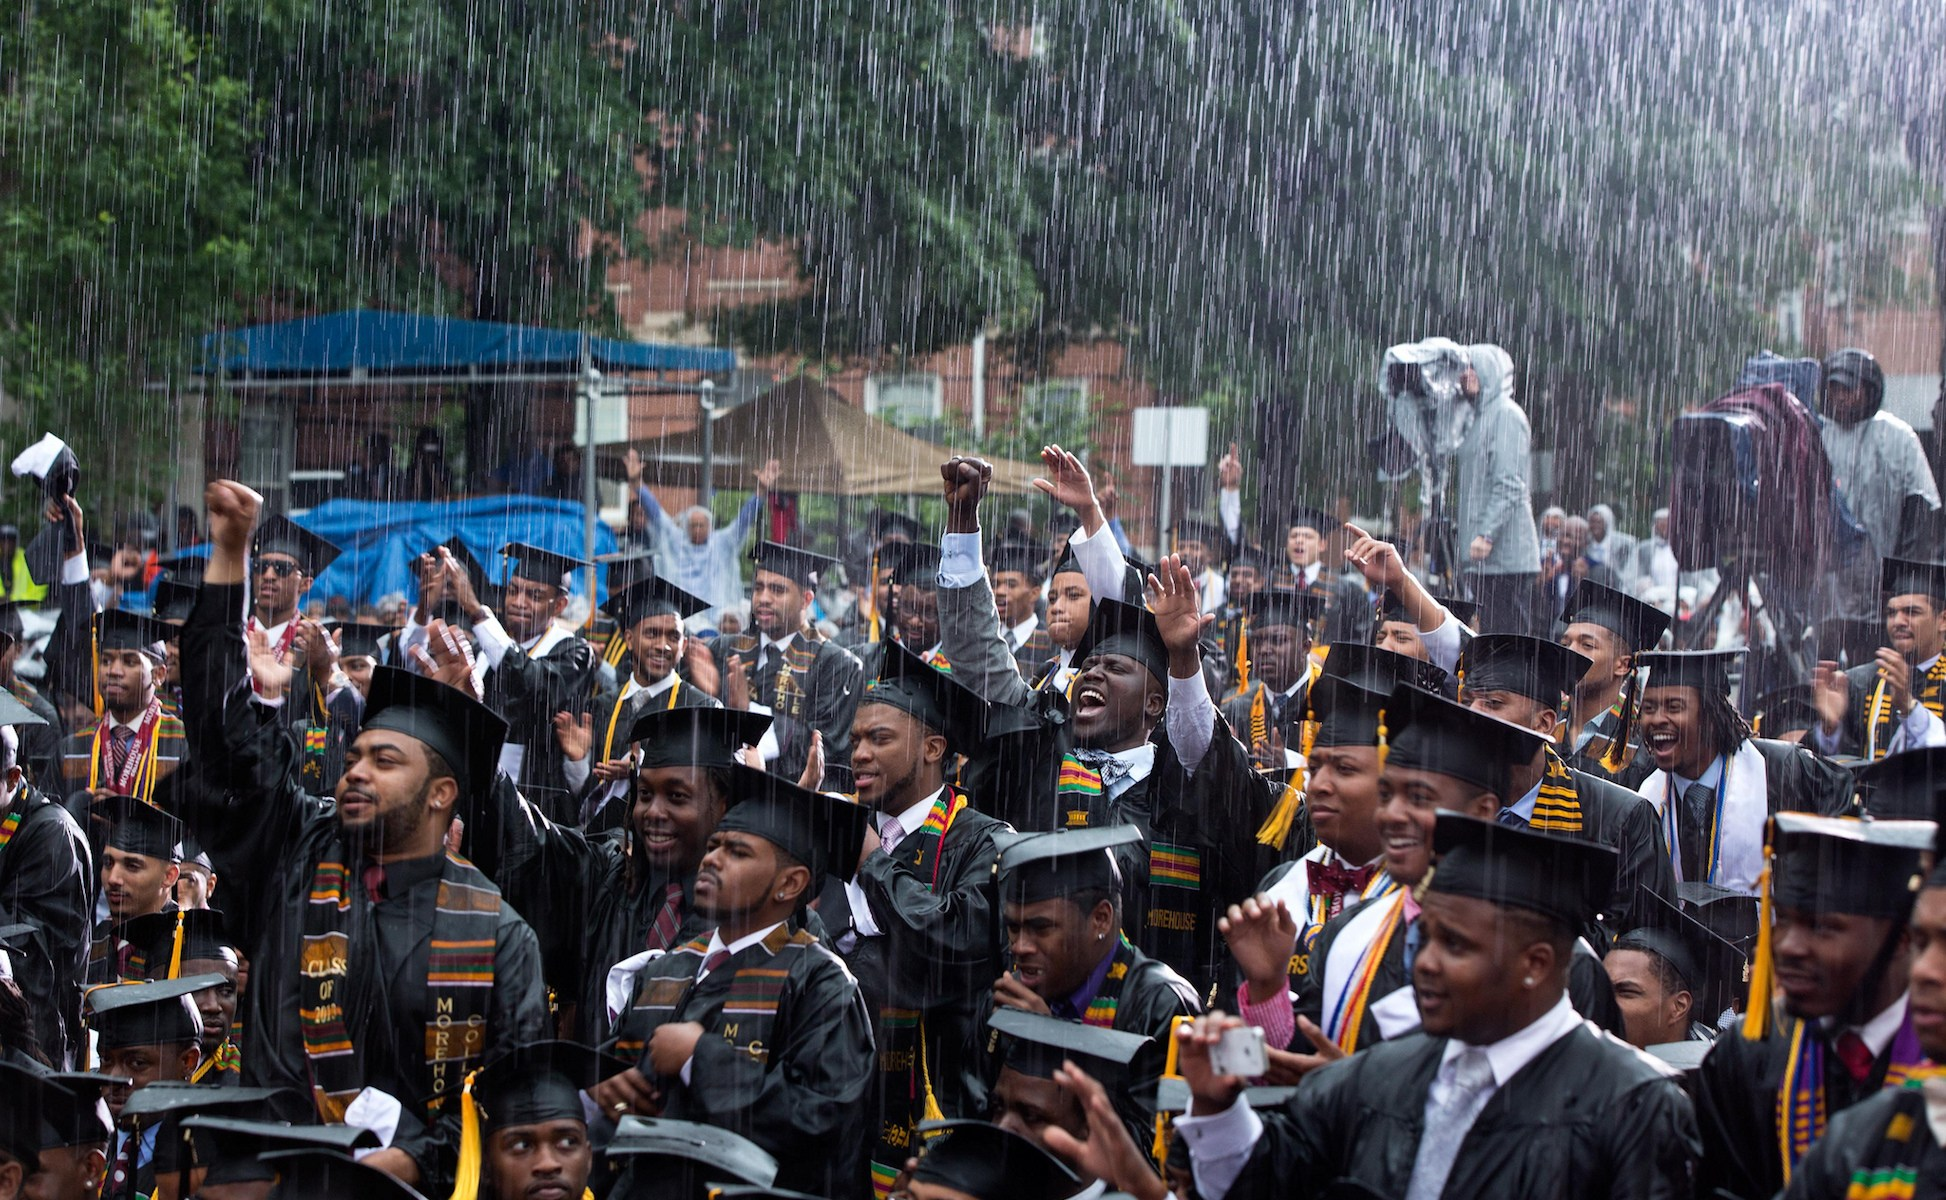 The crowd at Morehouse College's commencement.